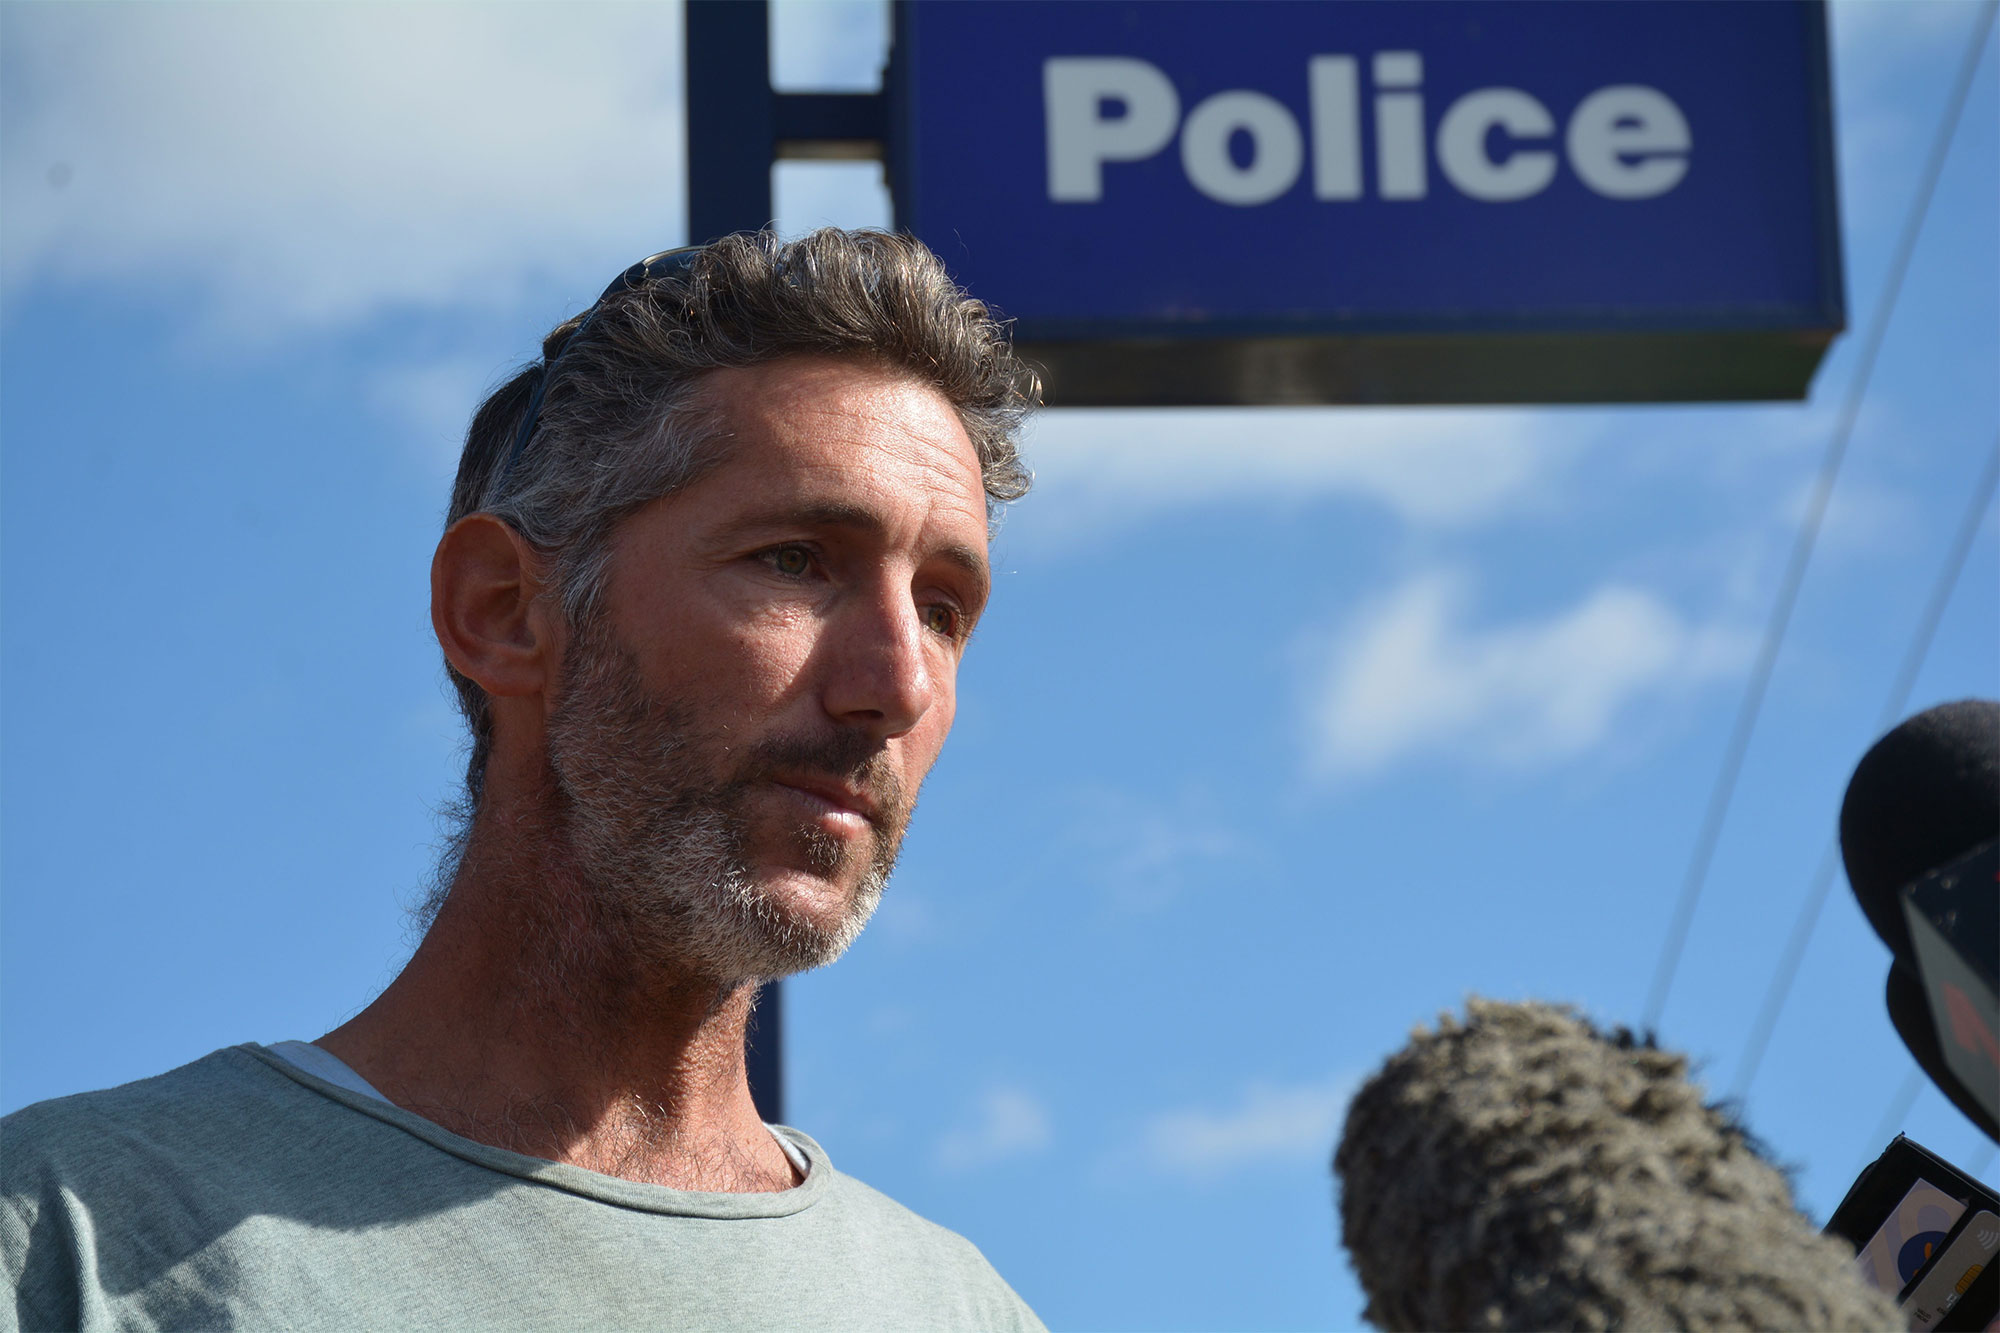 Press conference of father of four children killed near Margaret River, Western Australia - 13 May 2018